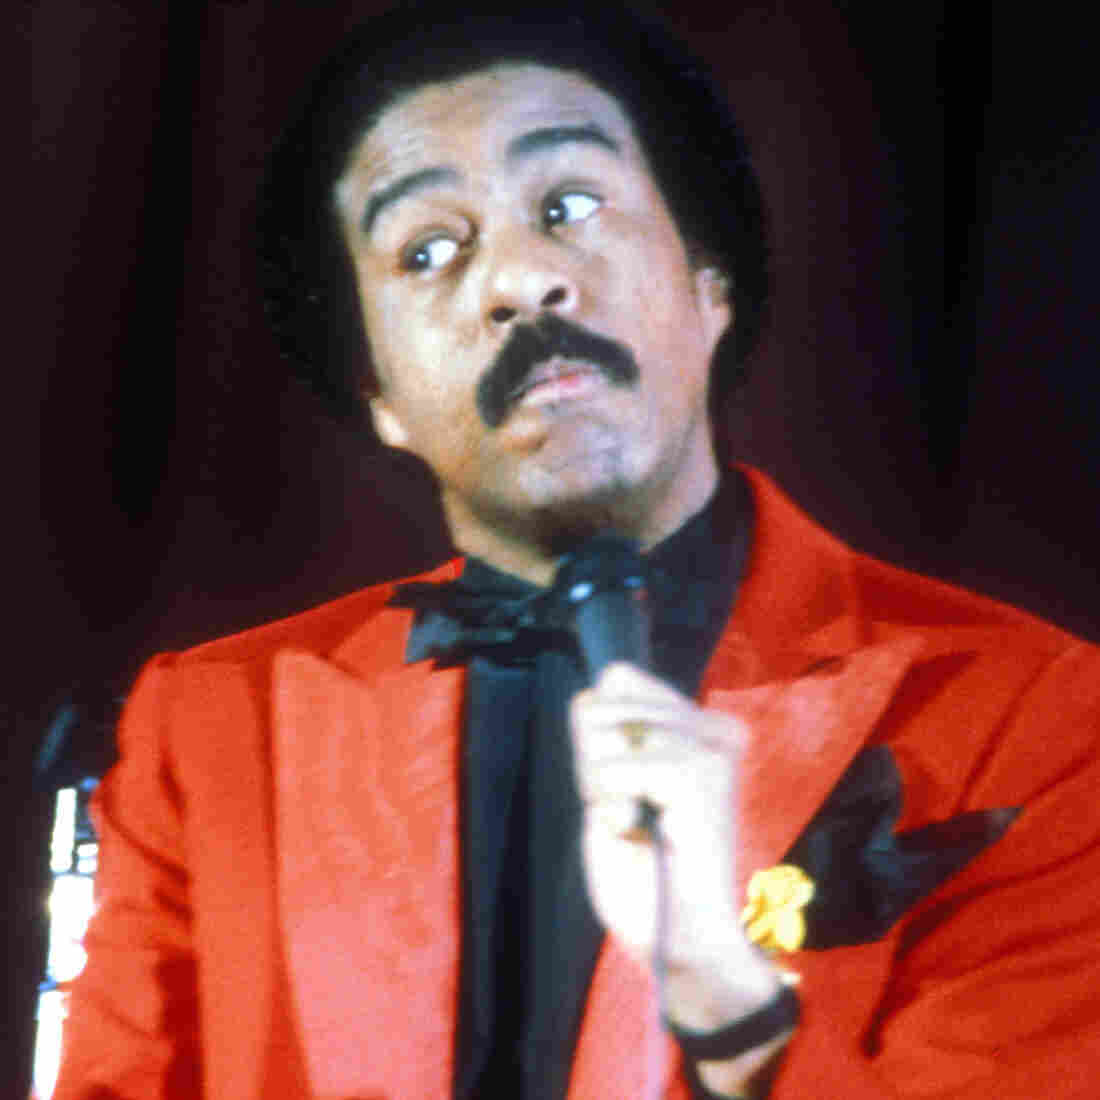 In this 1982 performance, comedian Richard Pryor makes fun of his well-known difficulties with cocaine.